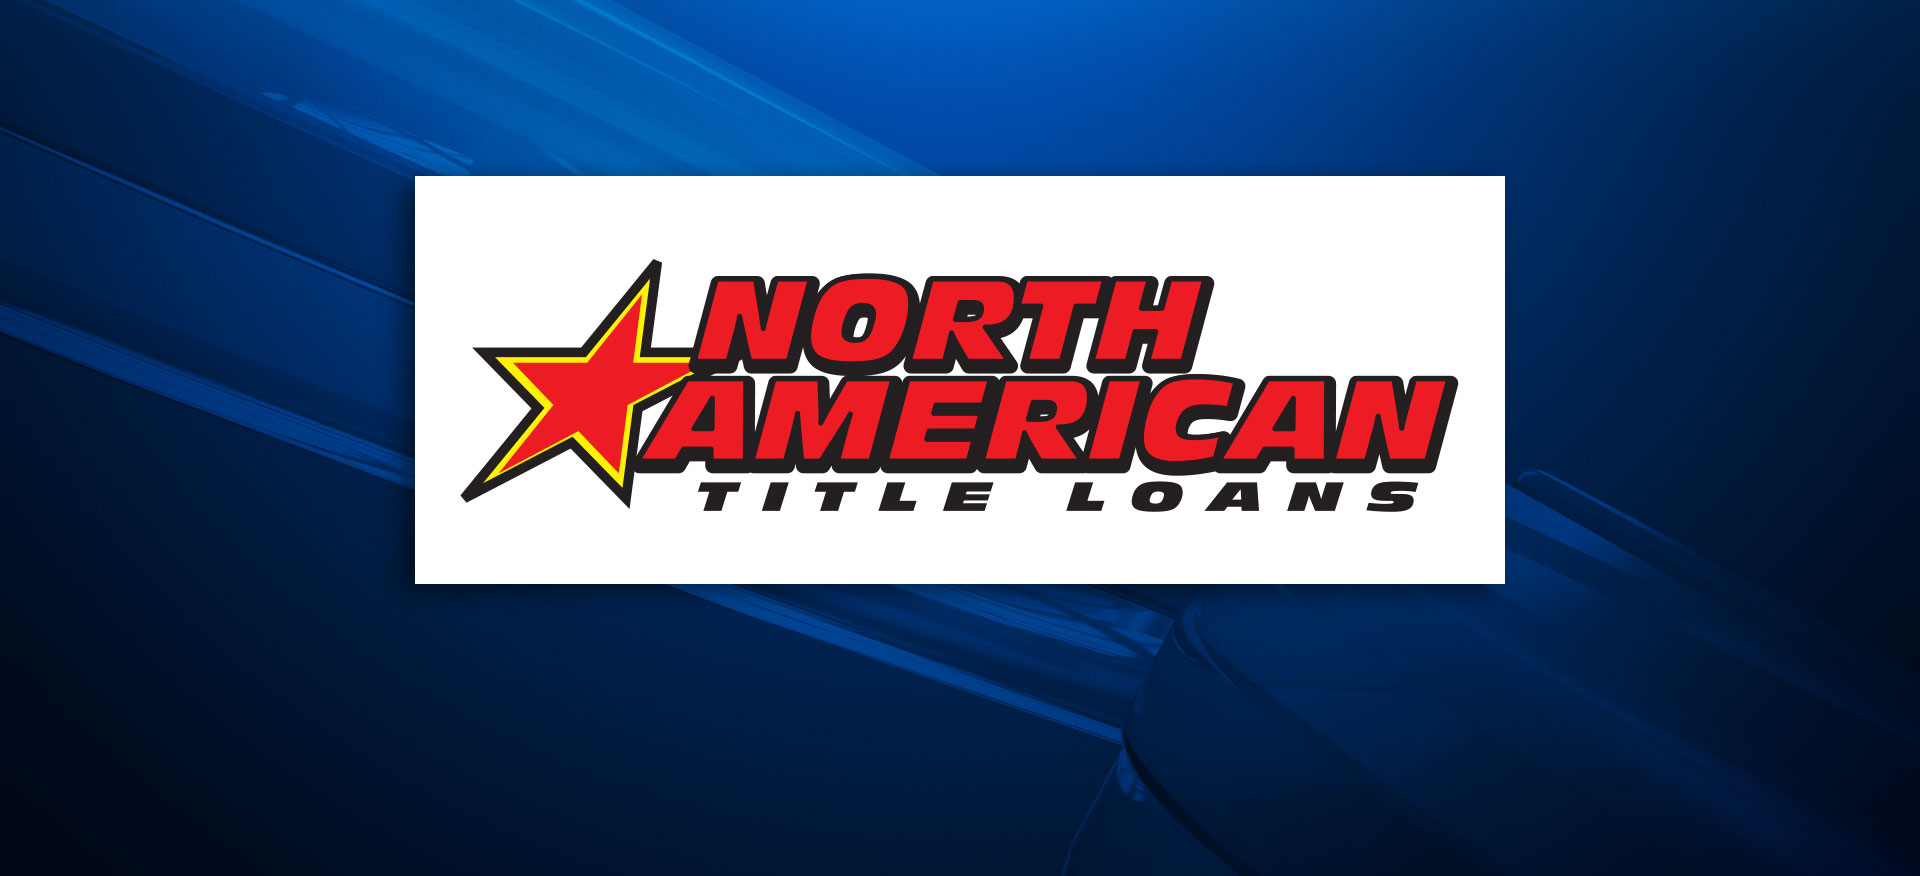 North American Title Loans